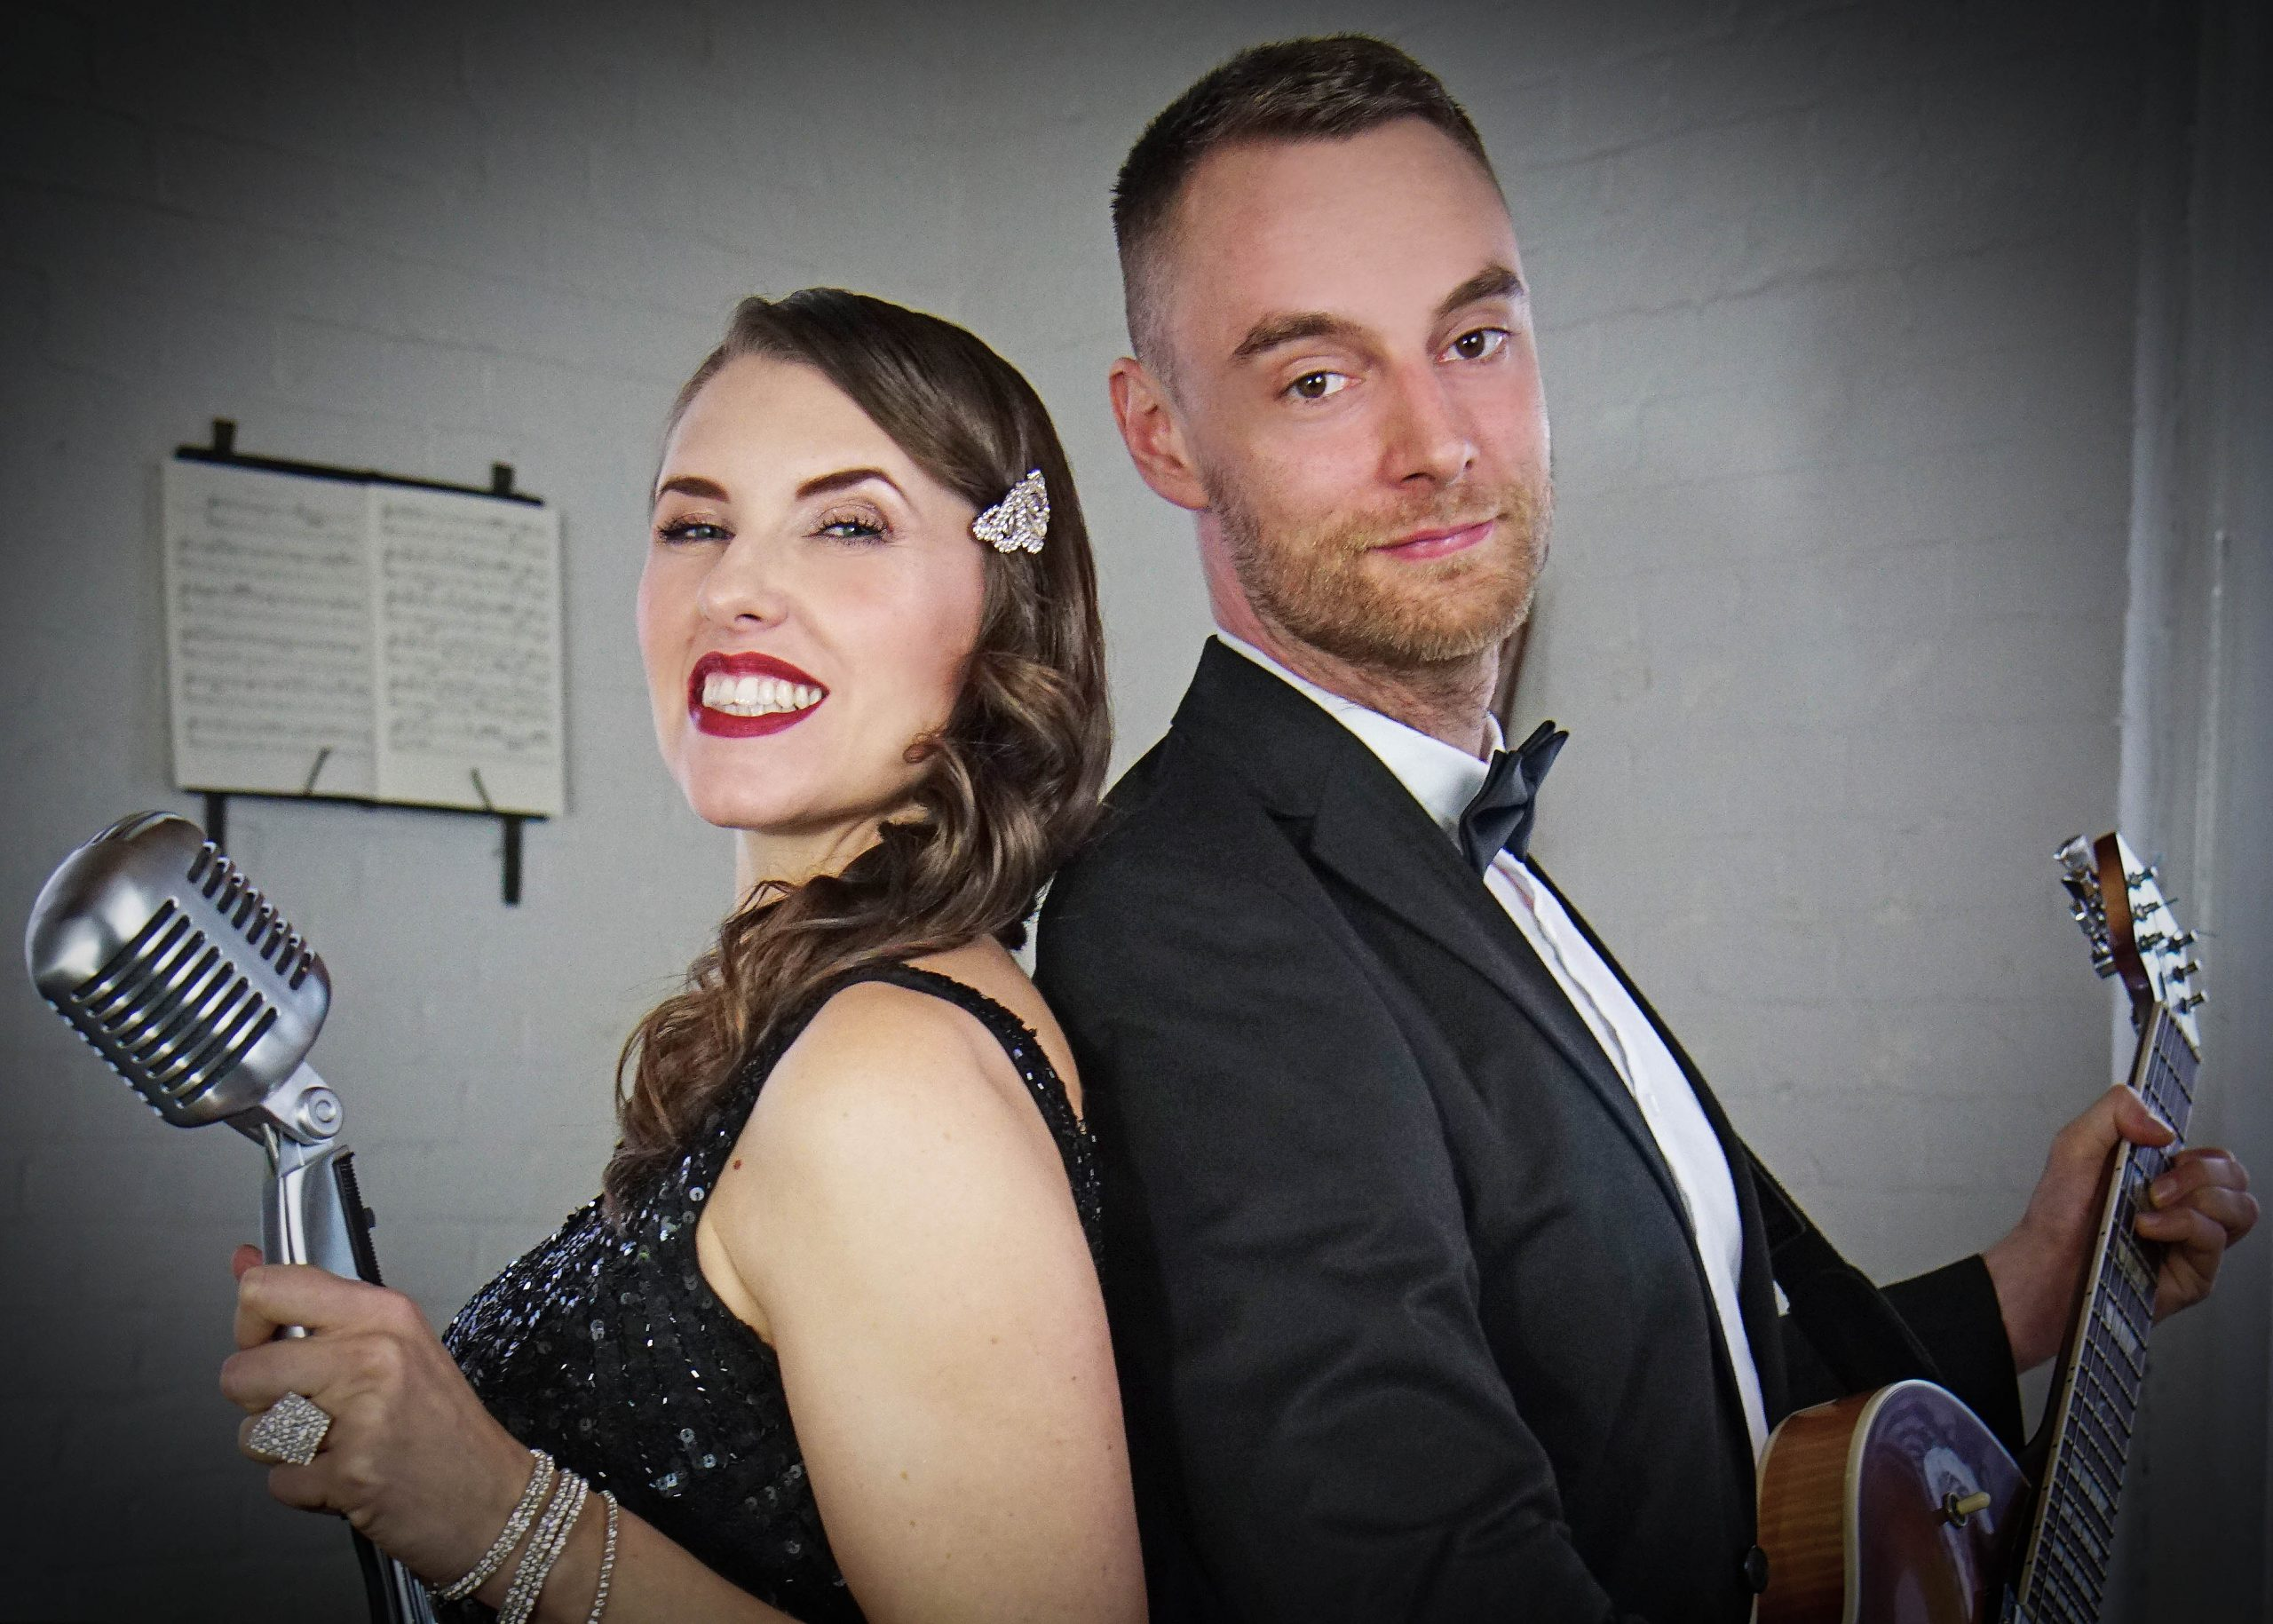 Gatsby duo for hire